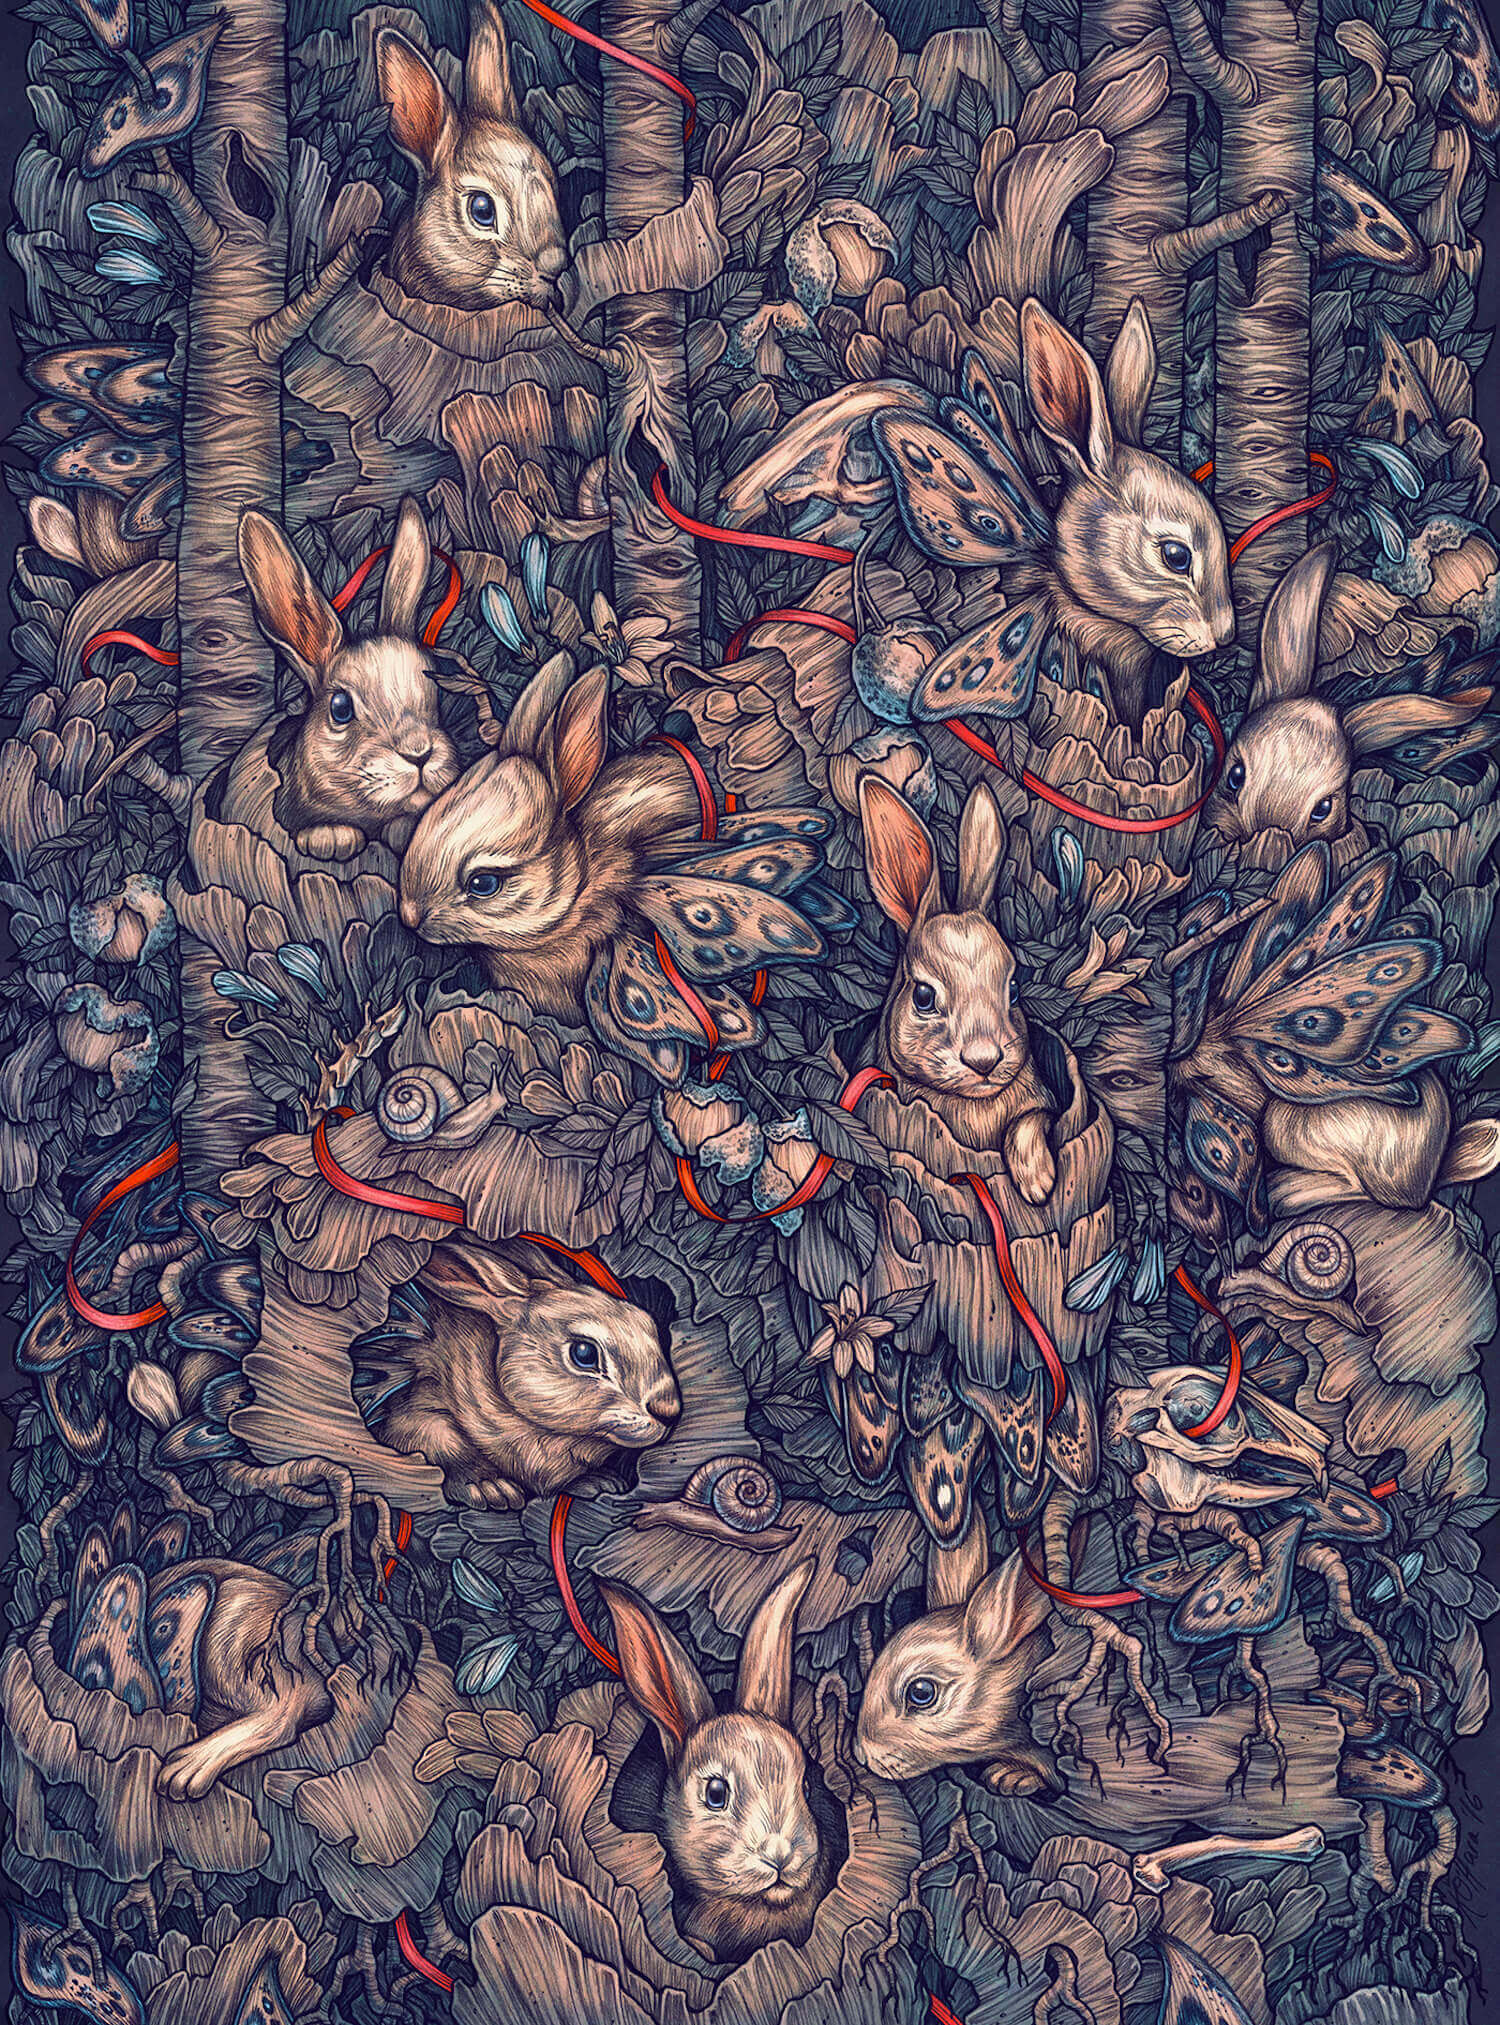 bunnies as butterflies by kate o' hara